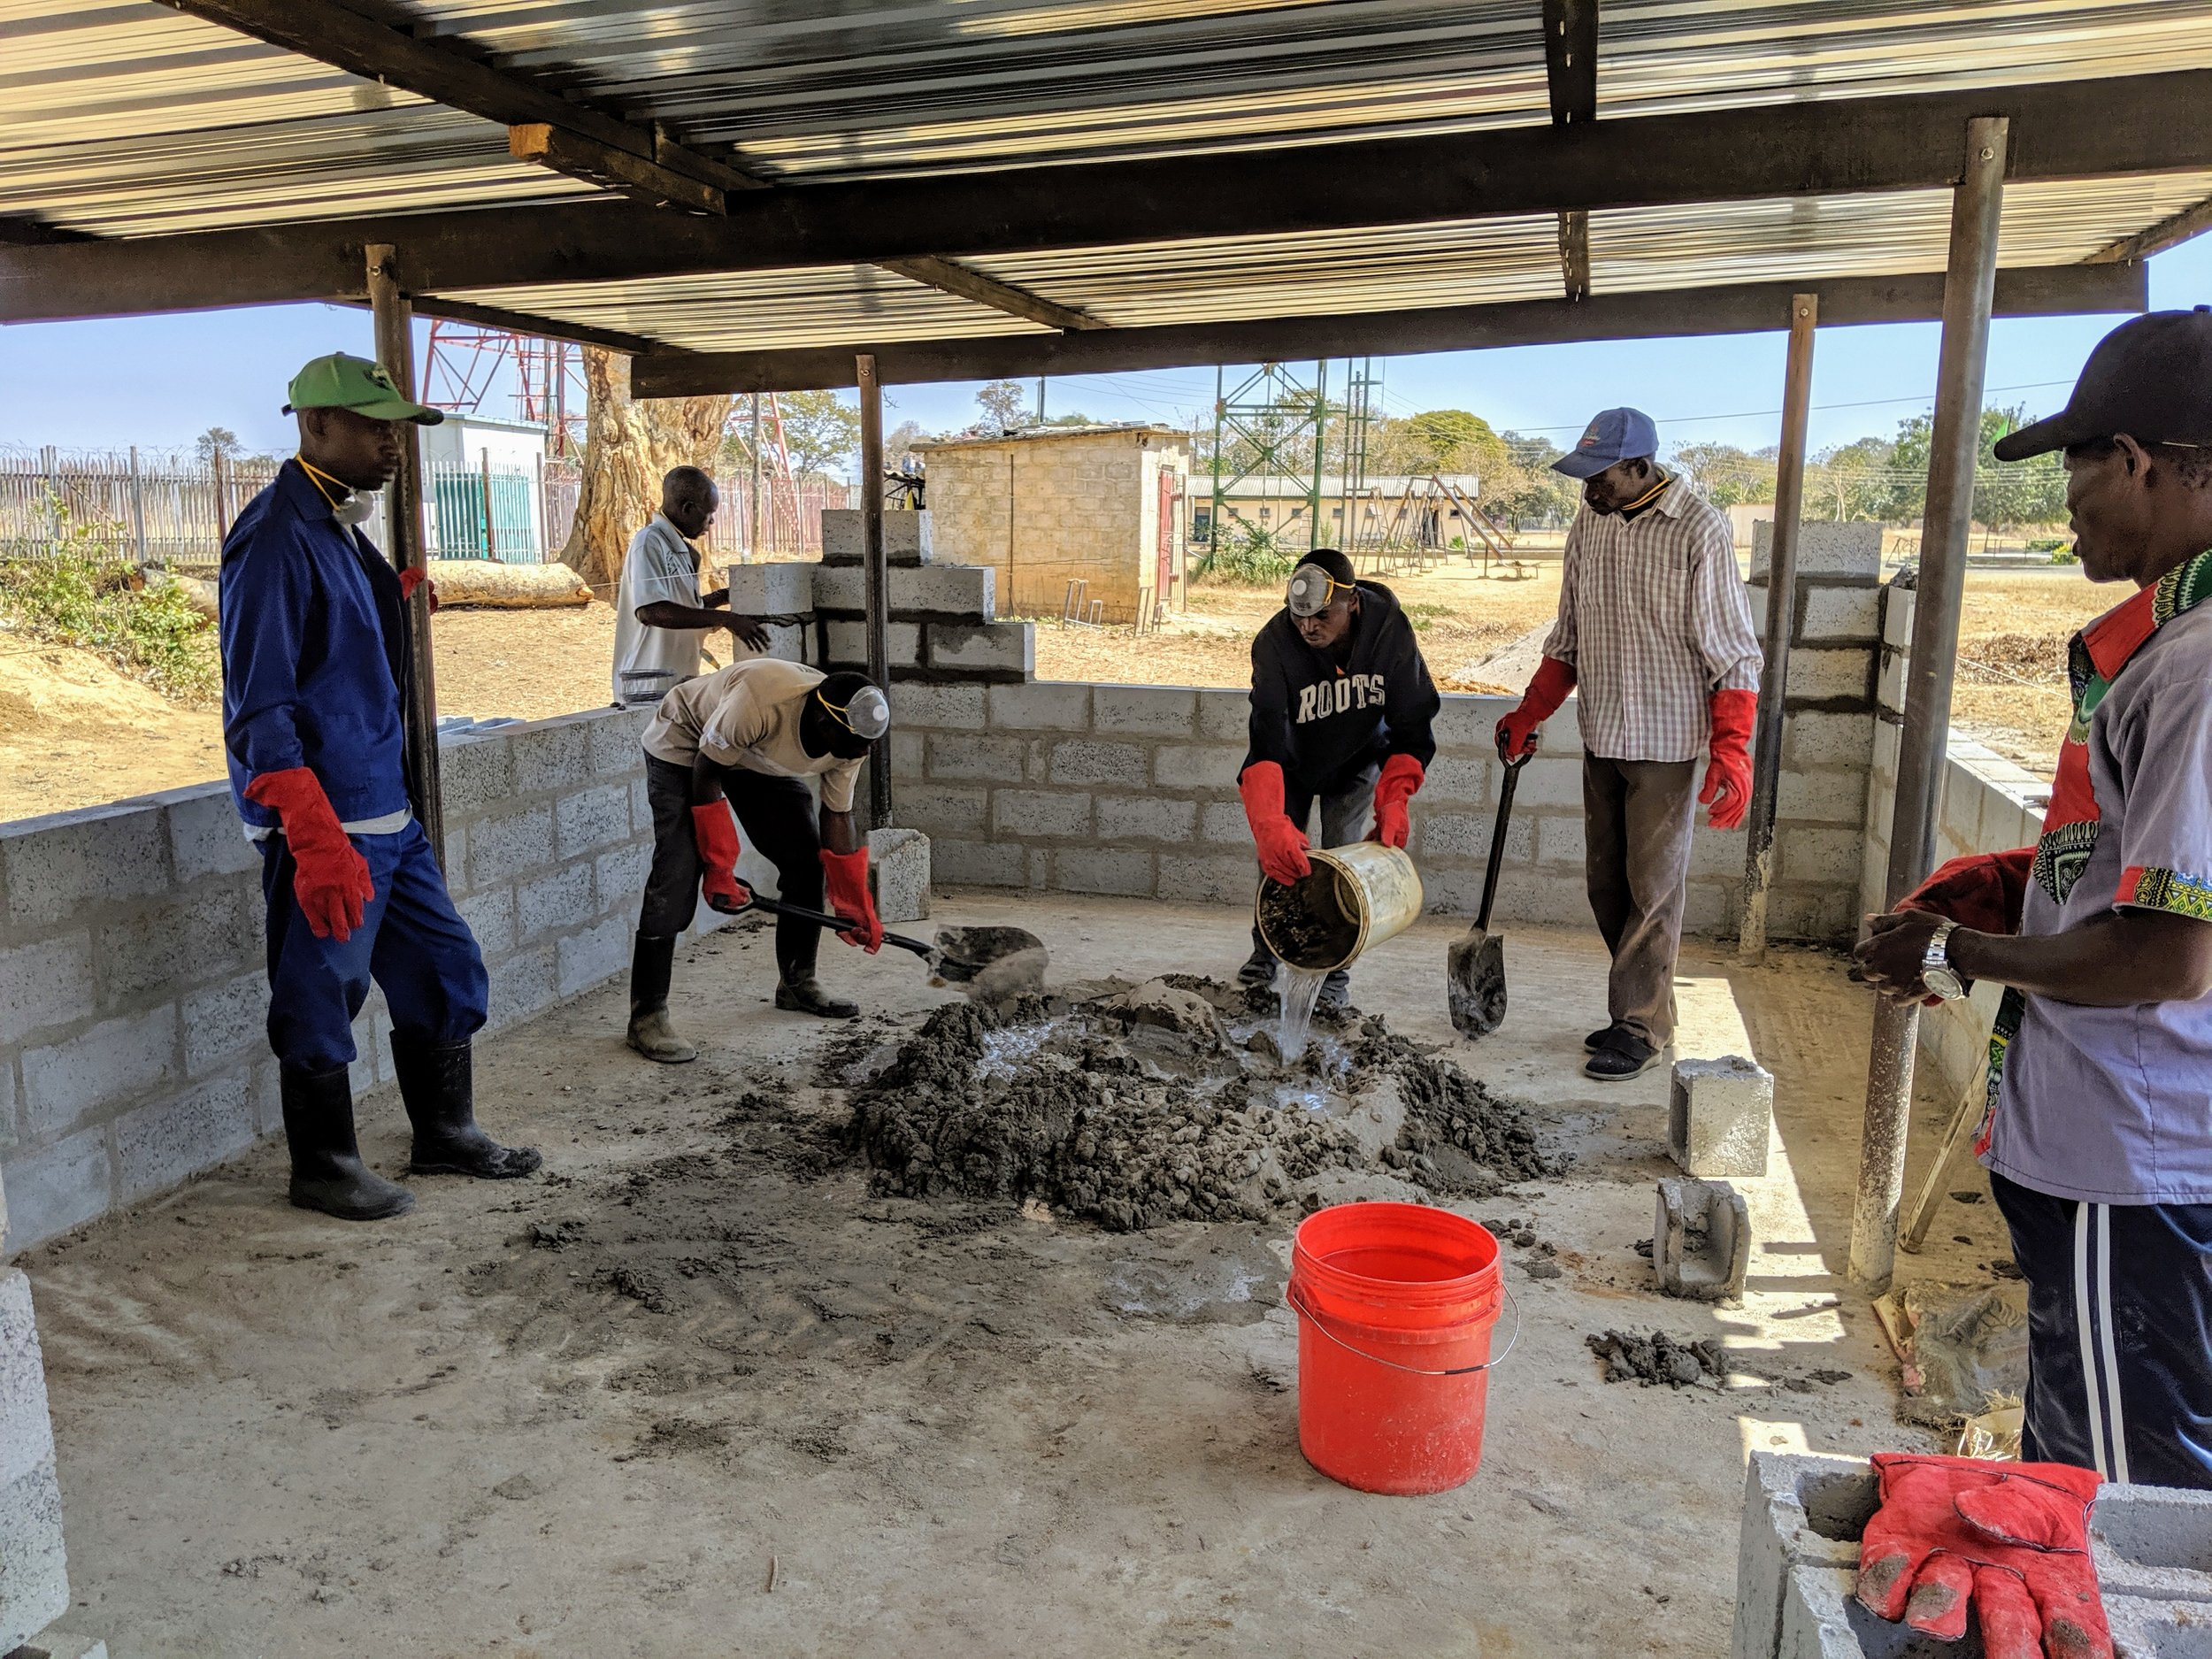 Mixing concrete to finish the wall in the background